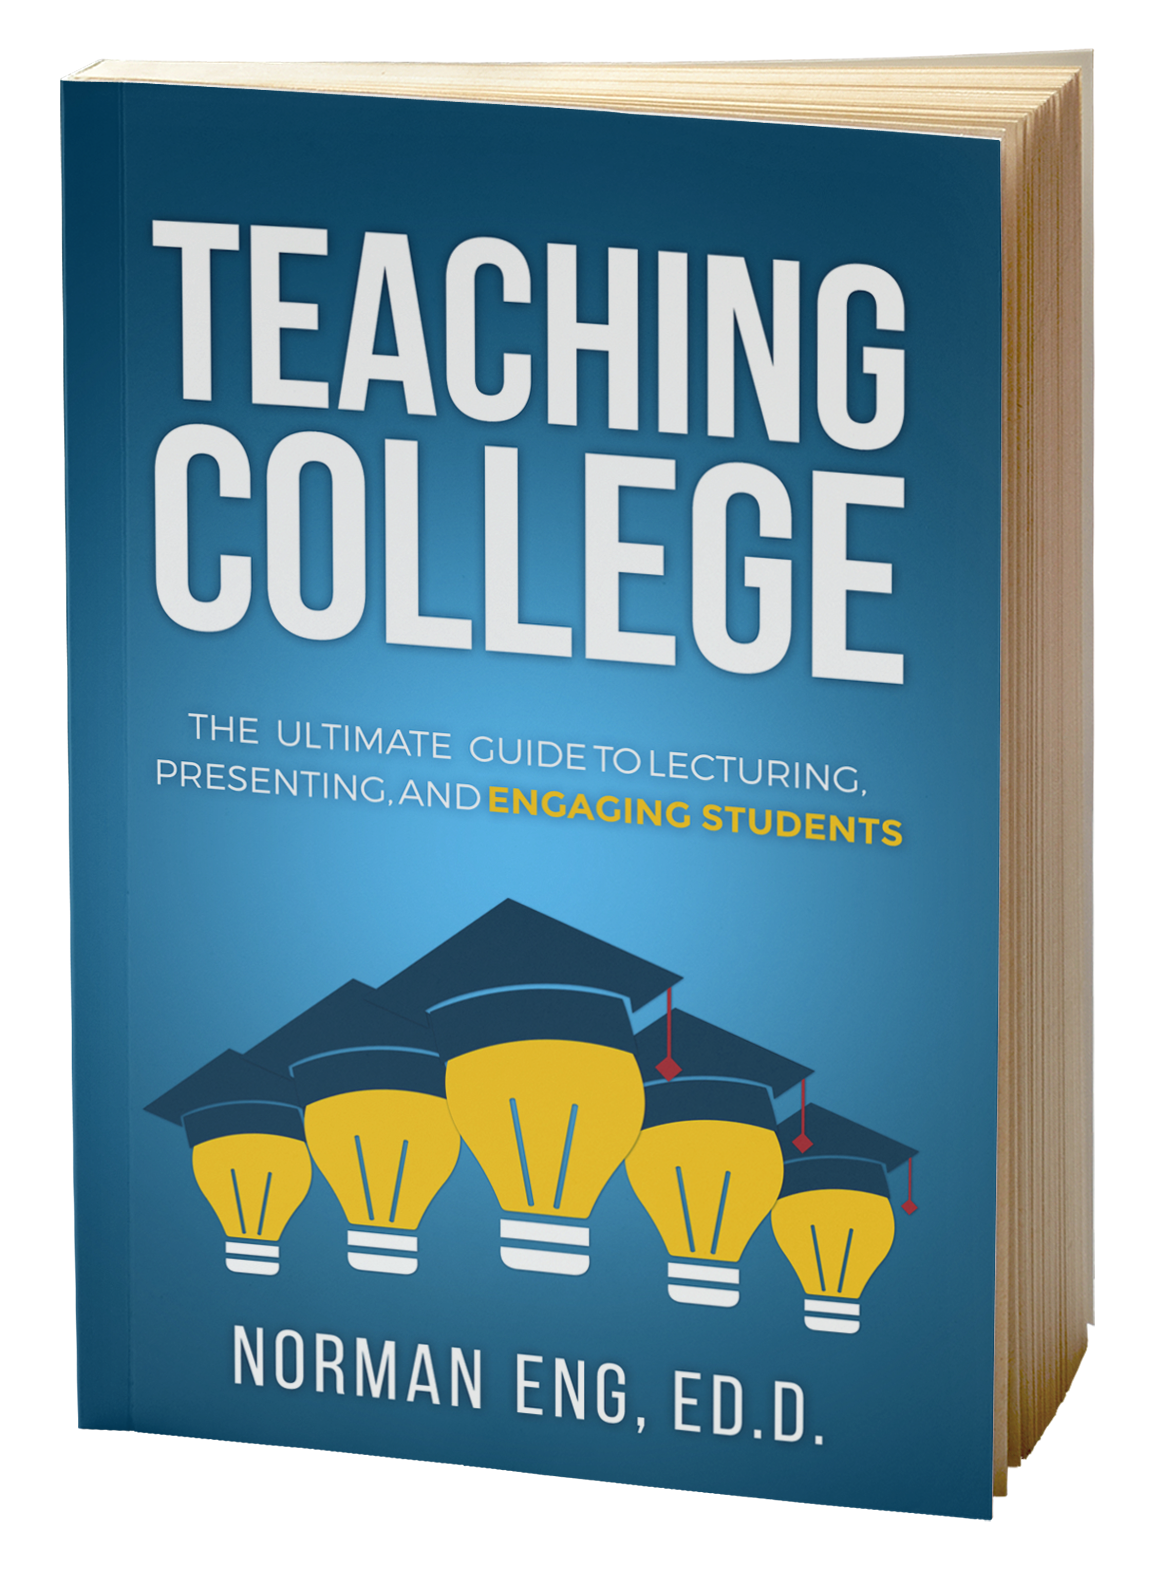 Norman Eng's Teaching College Book